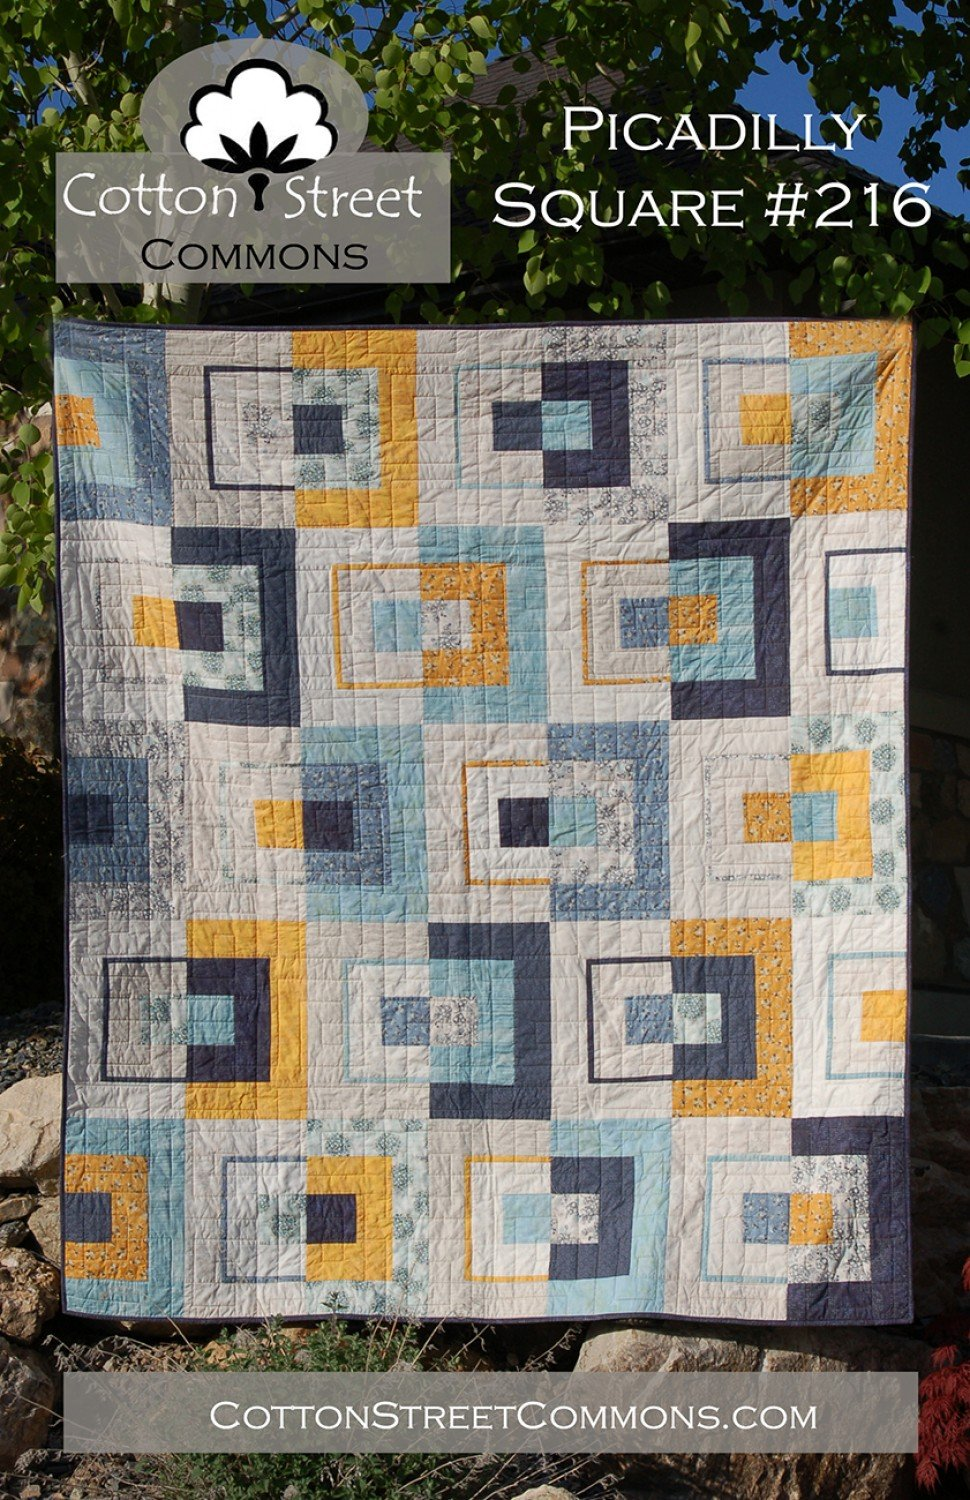 Picaddily Square Pattern by Cotton Street Commons